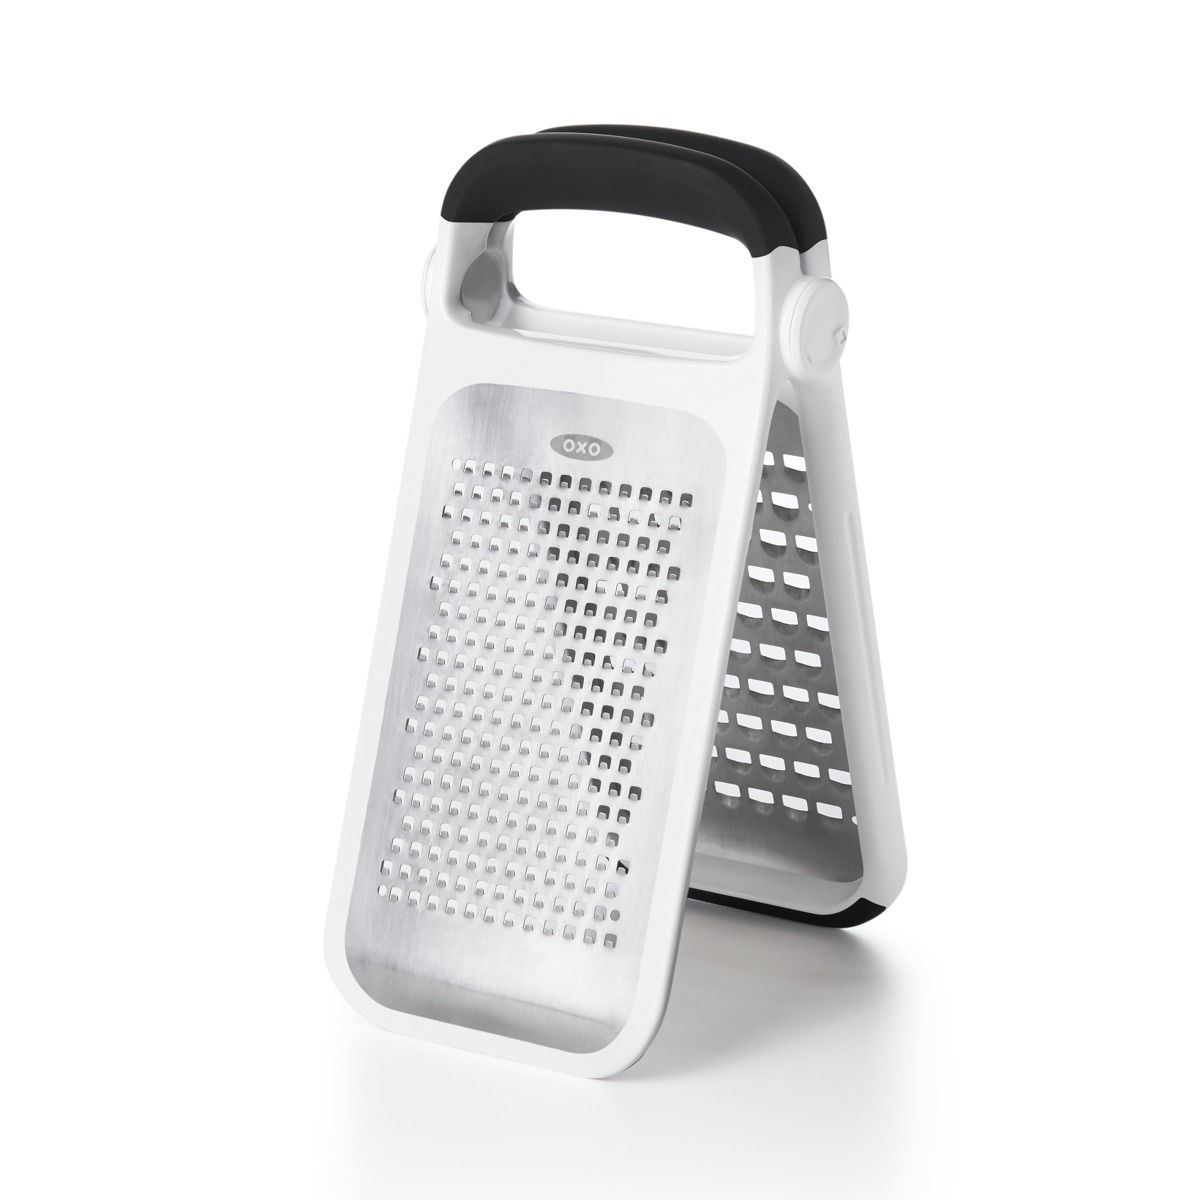 Two tools in one allow you to grate hard and soft cheeses  chocolate  potatoes  onions and more. The OXO Good Grips Etched Two-Fold Grater has extra-sharp  etched stainless steel grating surfaces that stand upright together over a cutting board or detach for use over a bowl. Coarse and medium grating patterns give you different options. The soft handle provides a comfortable grip  while non-slip feet stabilize the grater as you work. Two convenient  snap-on covers protect your hands and the grat